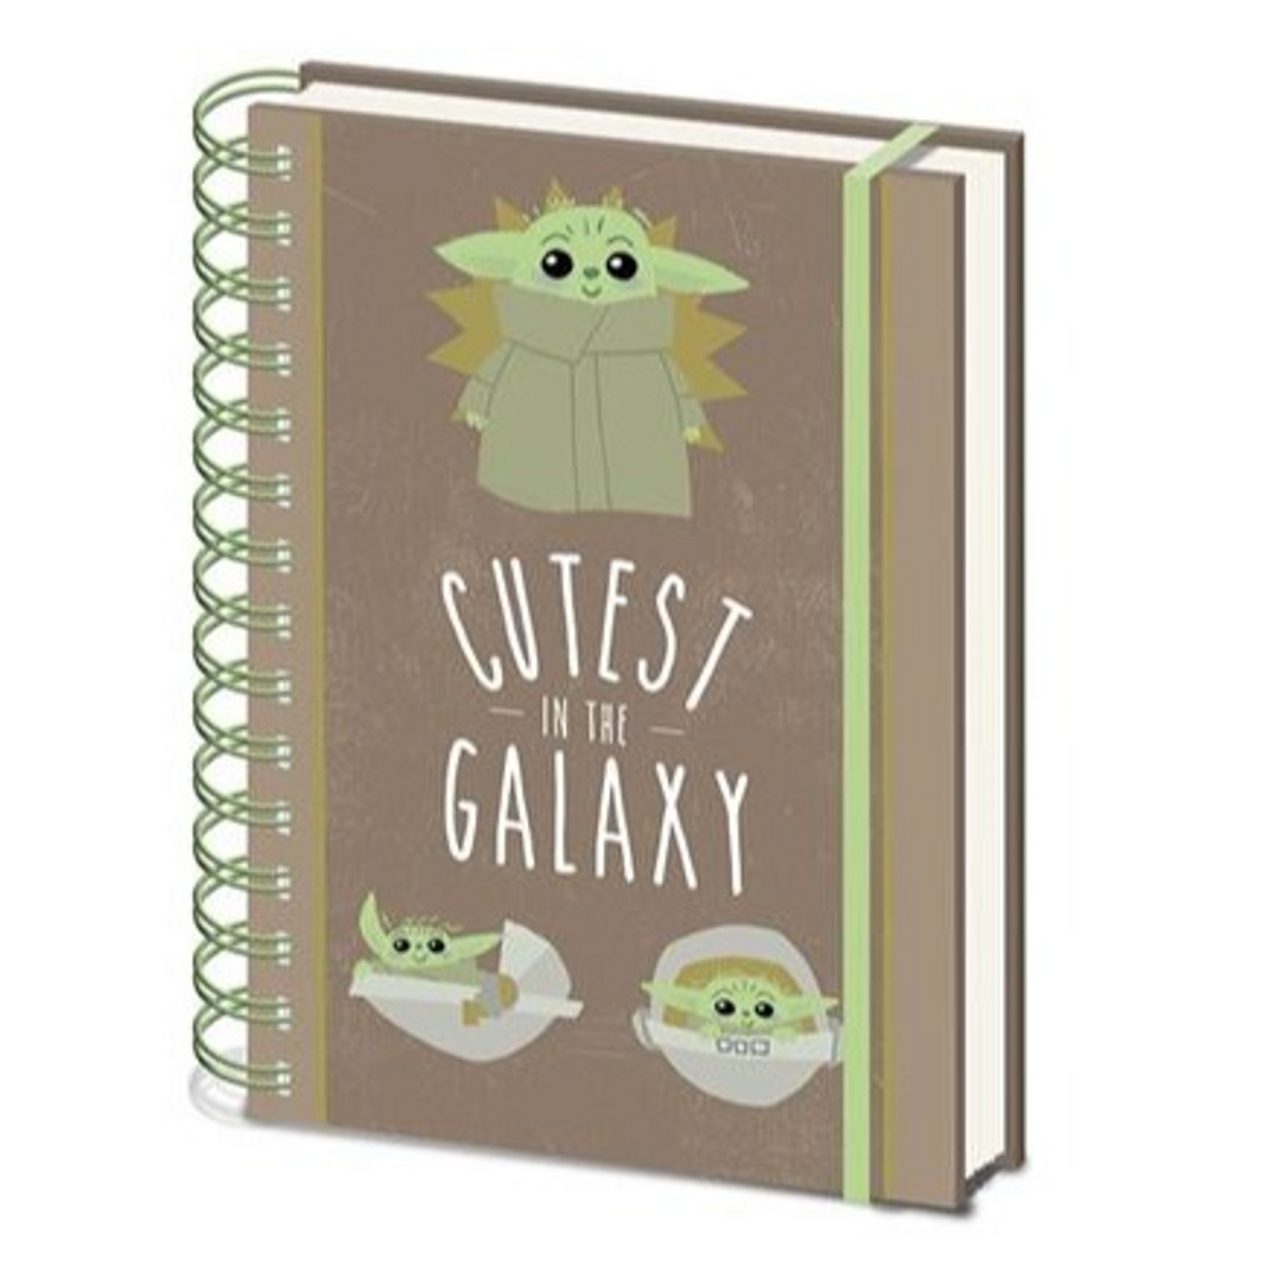 Star Wars: The Mandalorian - Cutest In All The Galaxy - Spiral Notebook (A5)